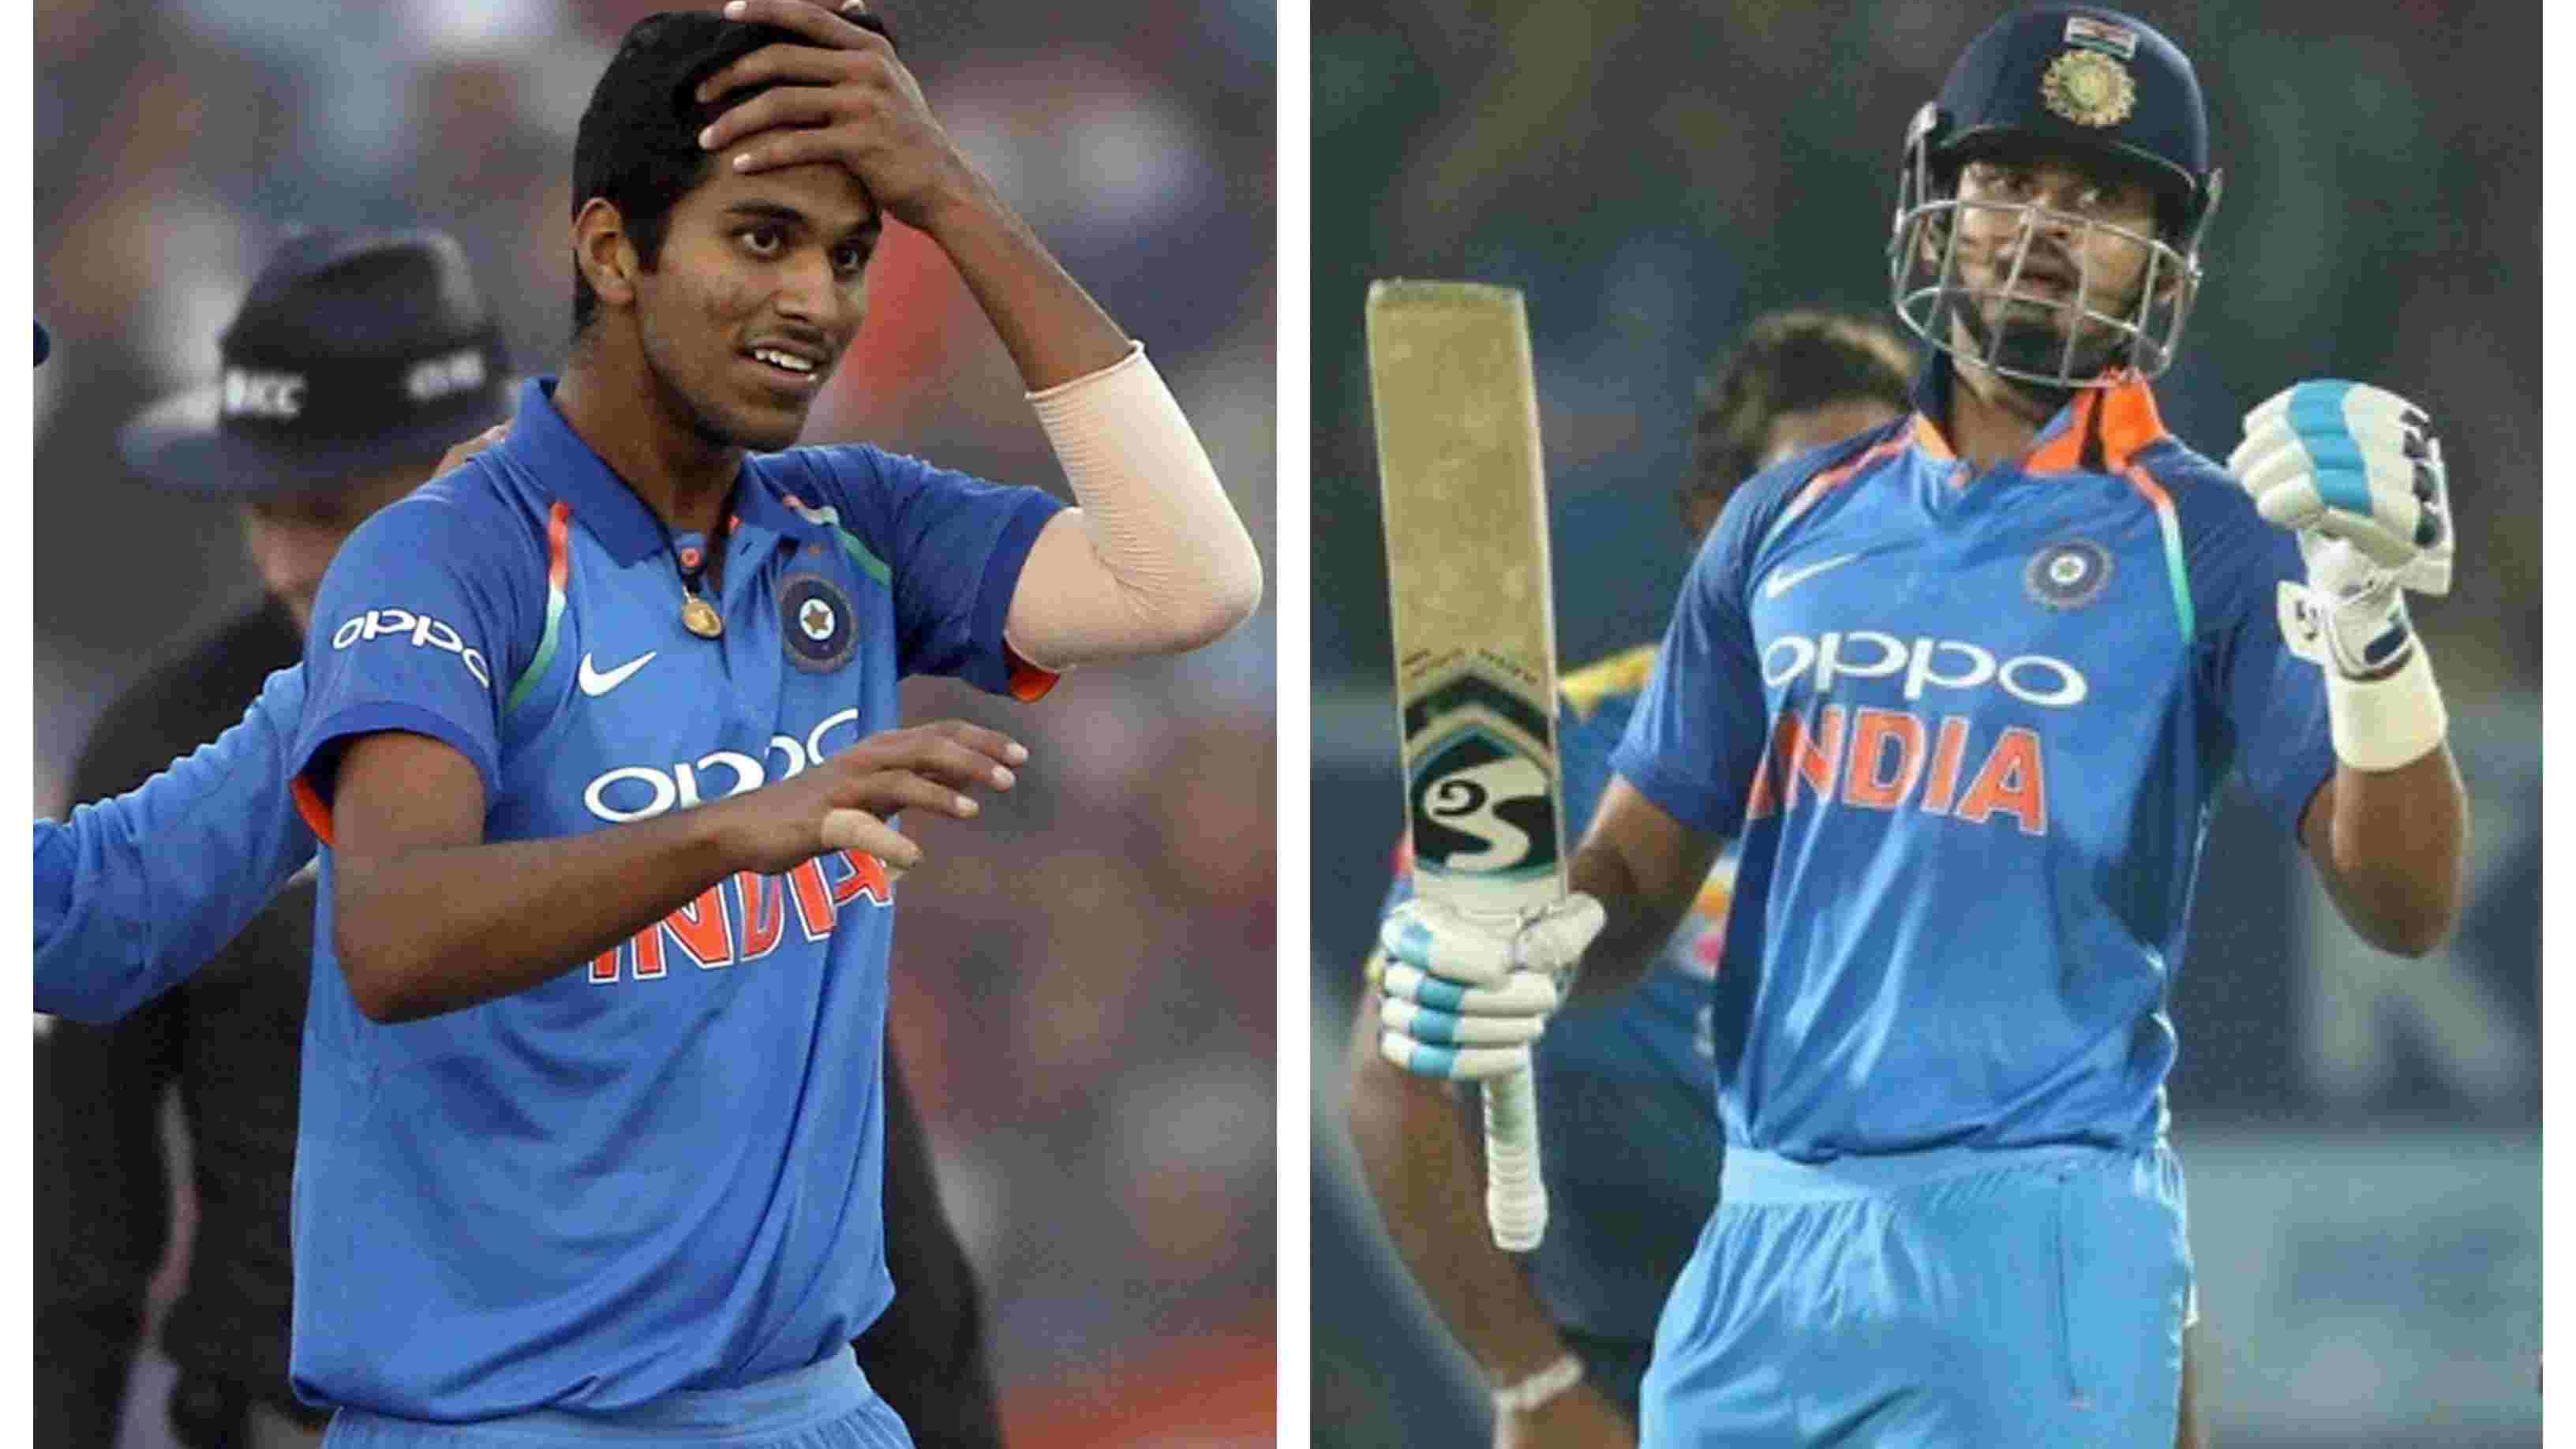 IND v WI 2018: Shreyas Iyer, Washington Sundar likely to play in the third T20I